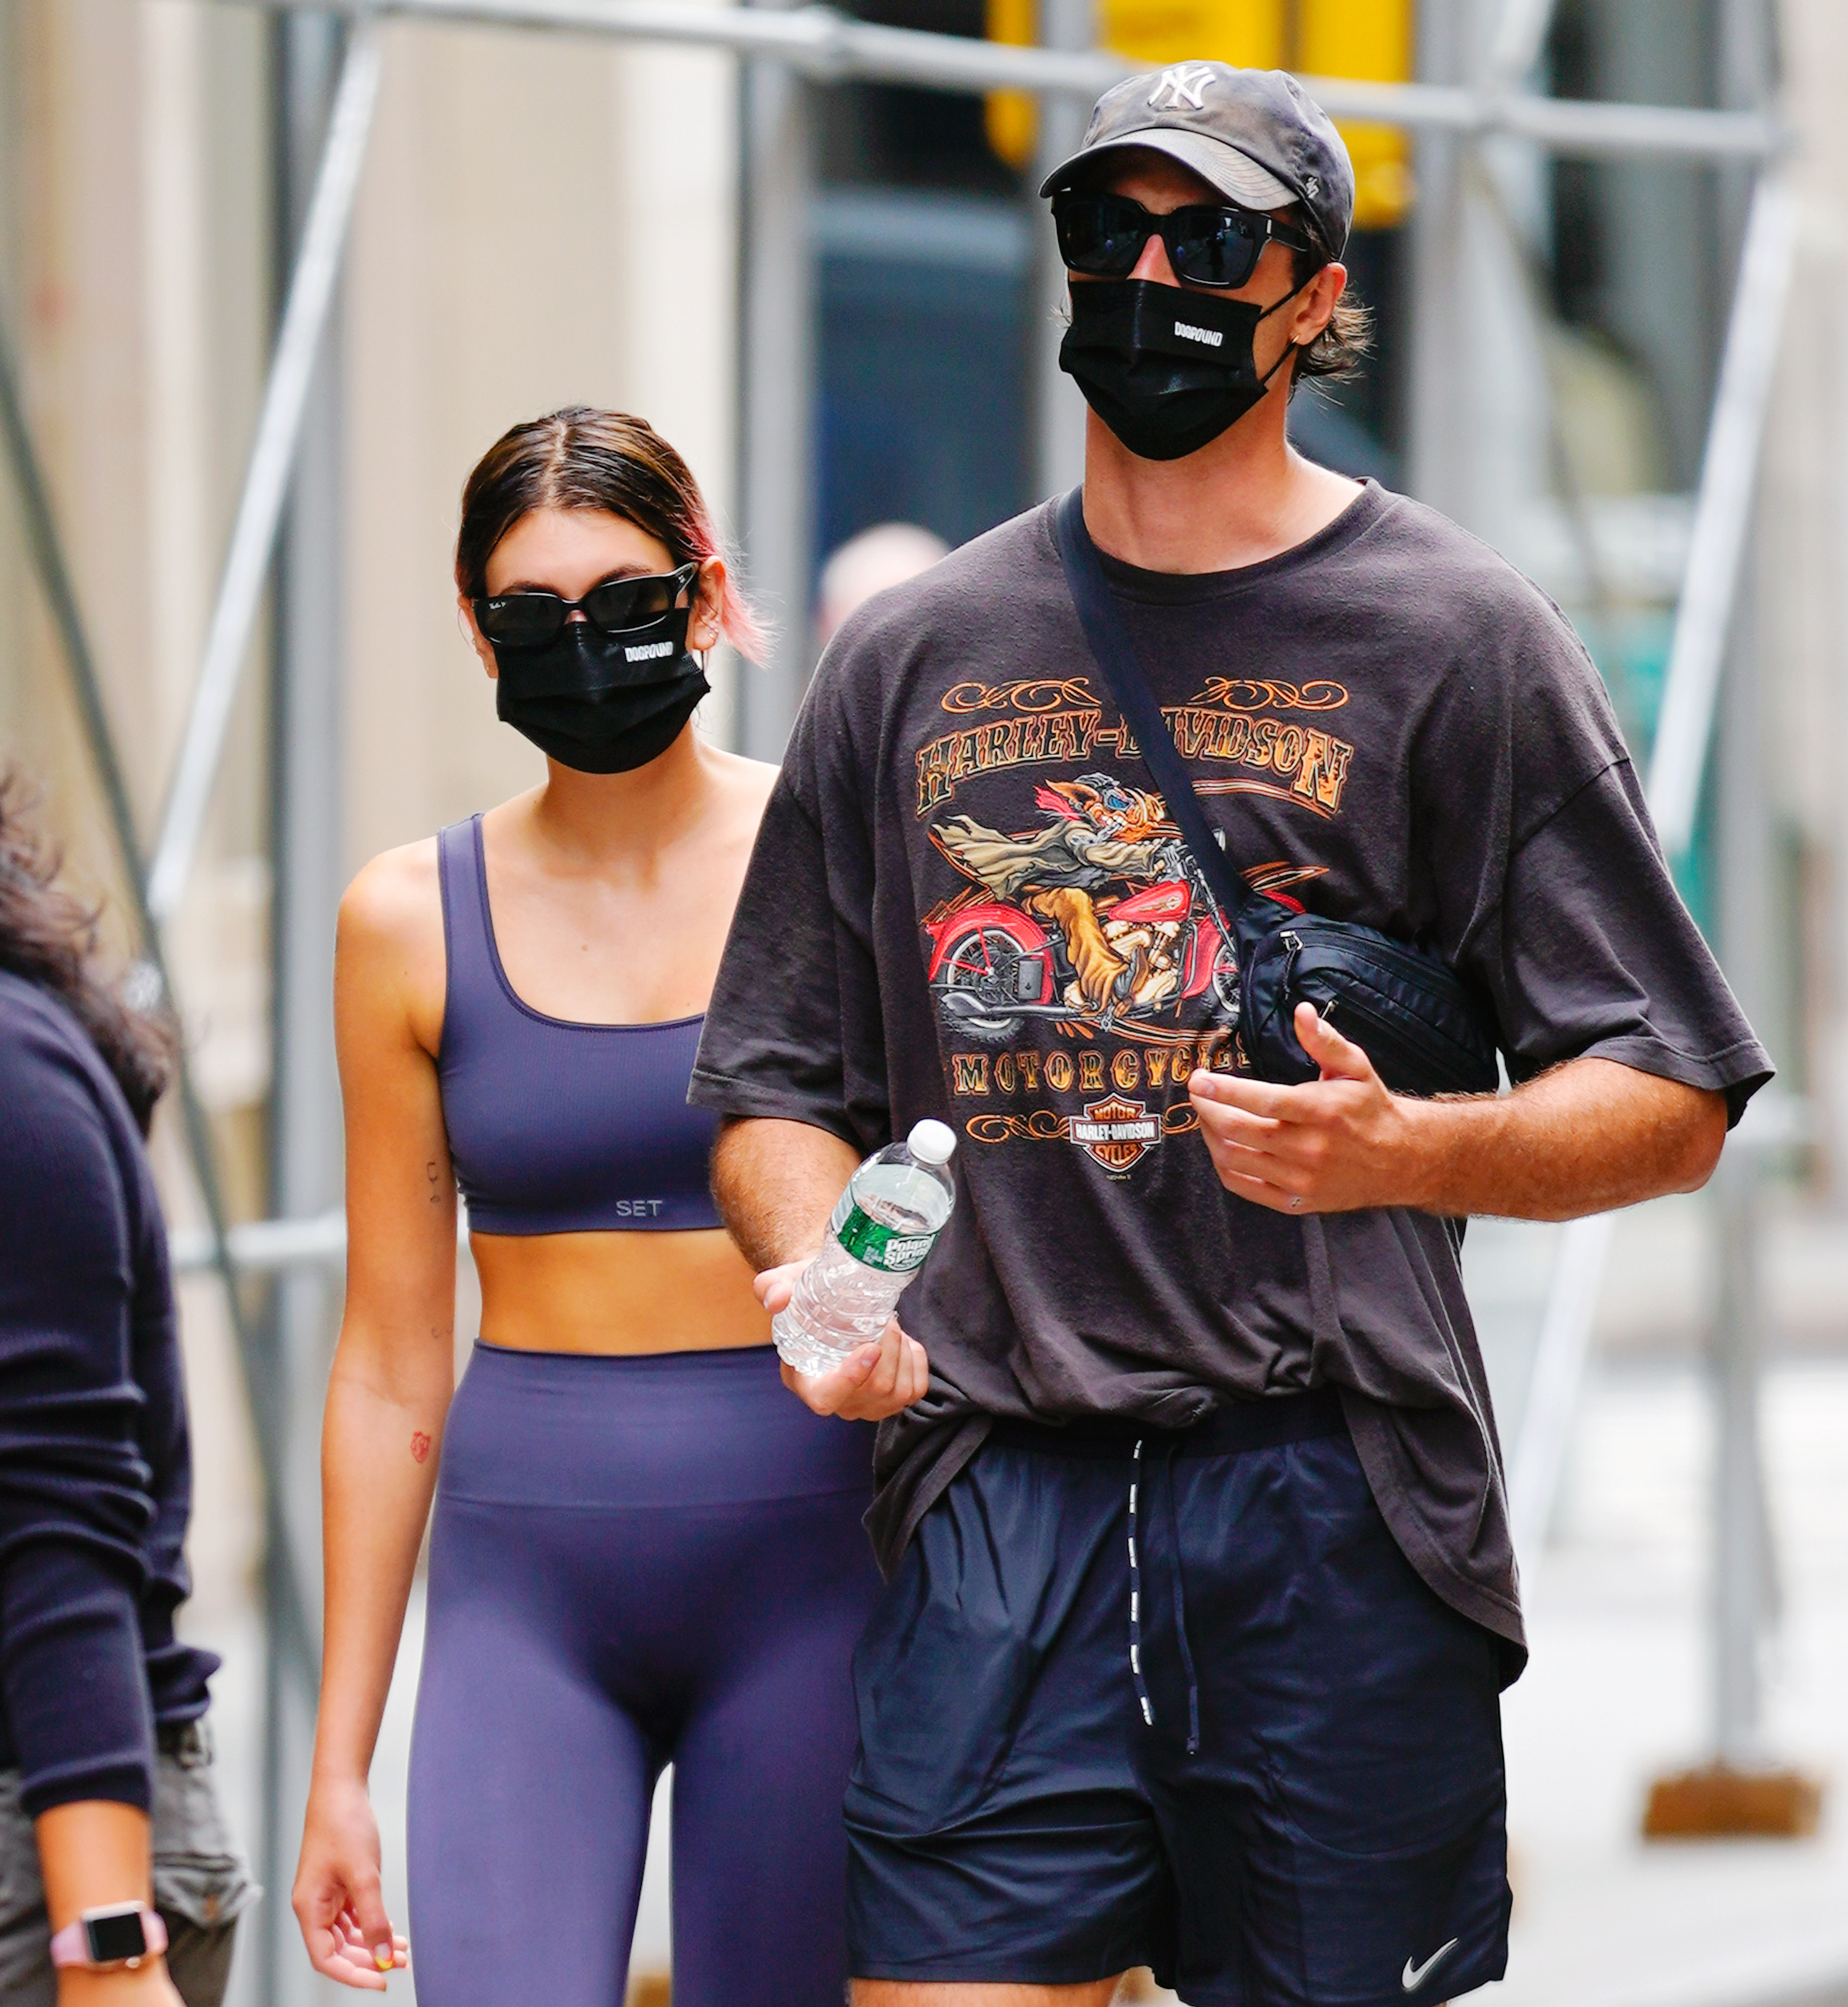 Kaia Gerber and Jacob Elordi come back from the gym on September 09, 2020 in New York City.